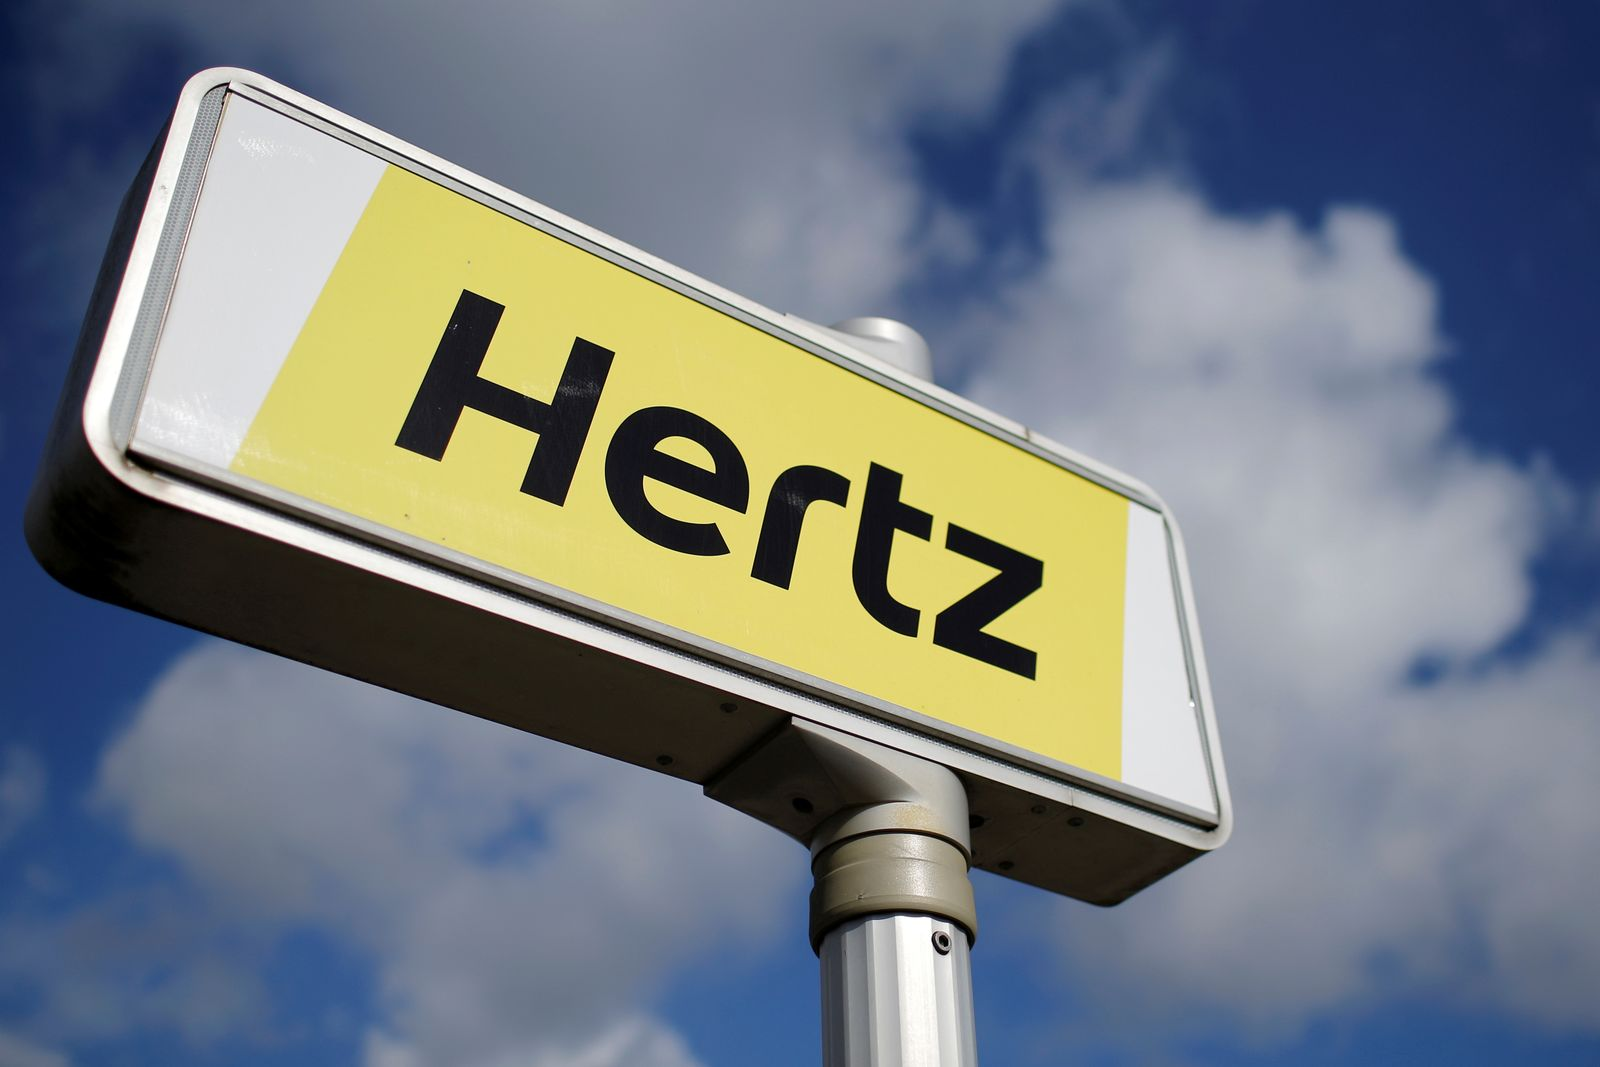 FILE PHOTO: The logo of the American car rental company Hertz is seen at the Nantes-Atlantique airport in Bouguenais near Nantes